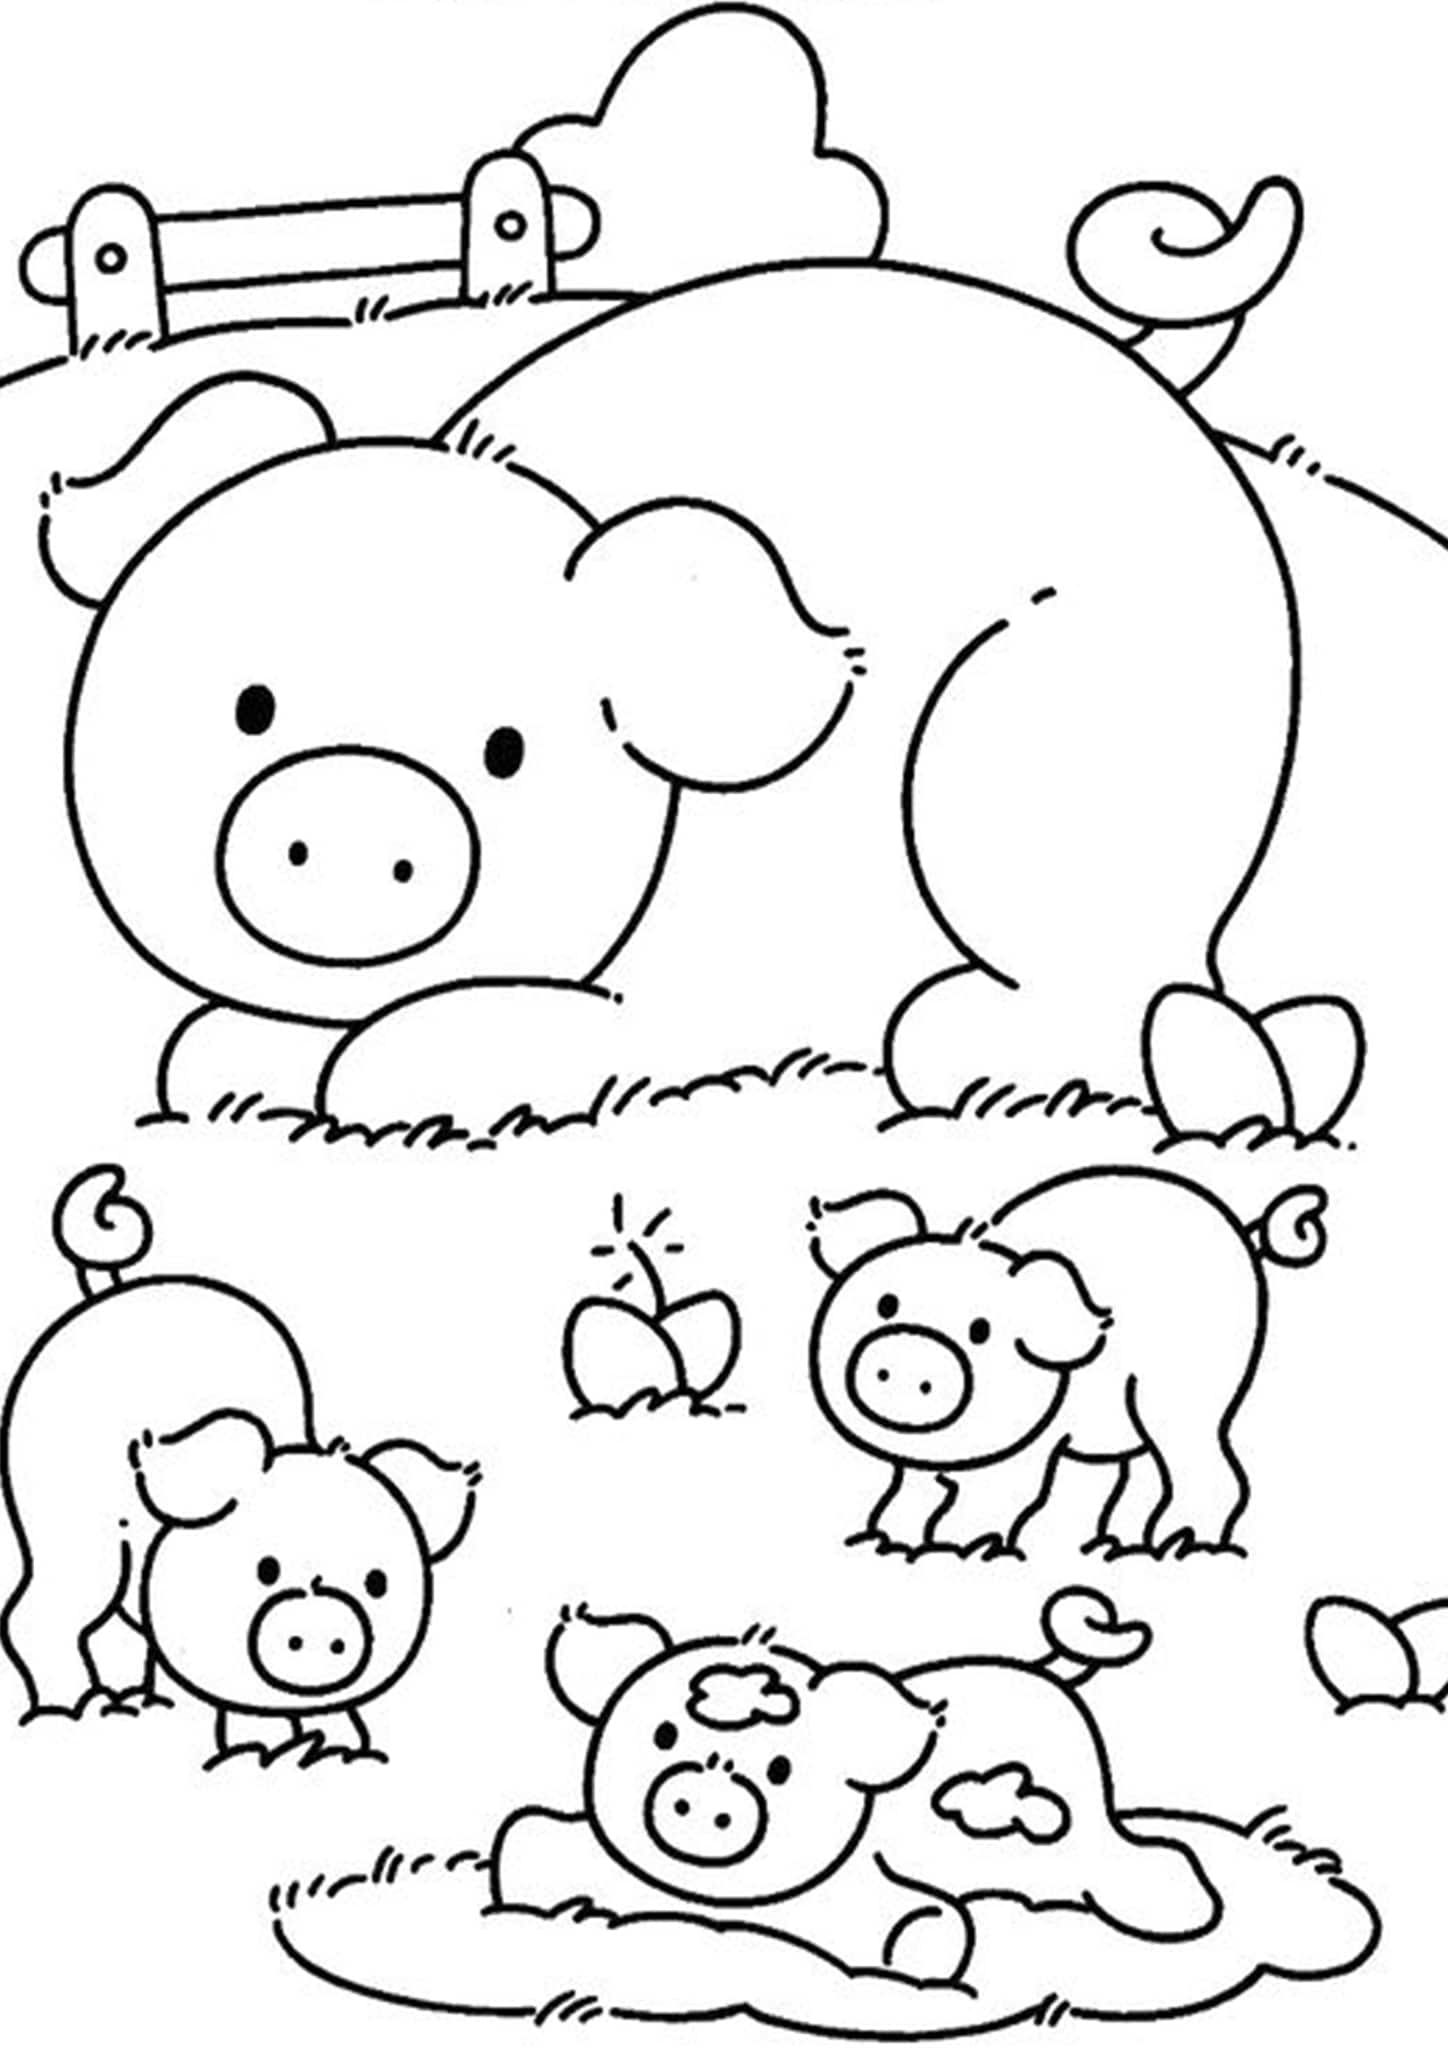 Free & Easy To Print Pig Coloring Pages  Farm coloring pages